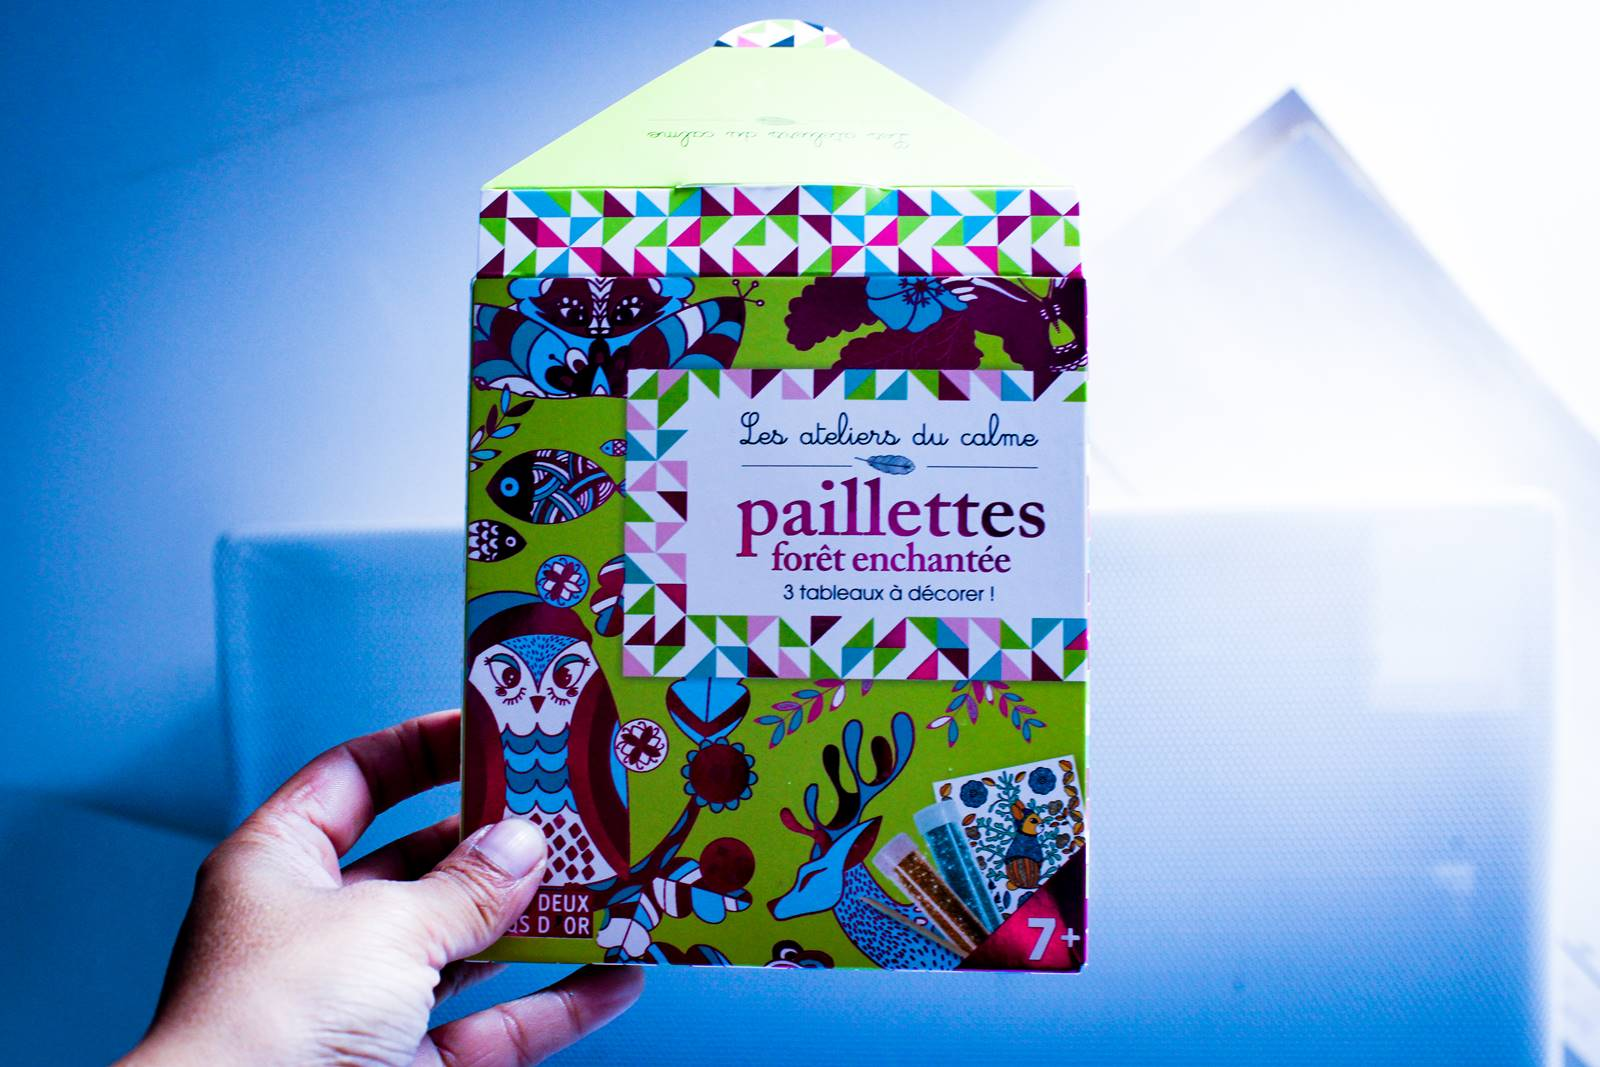 Paillettes forets enchantees deux coqs d or hachette ief homescooling 2